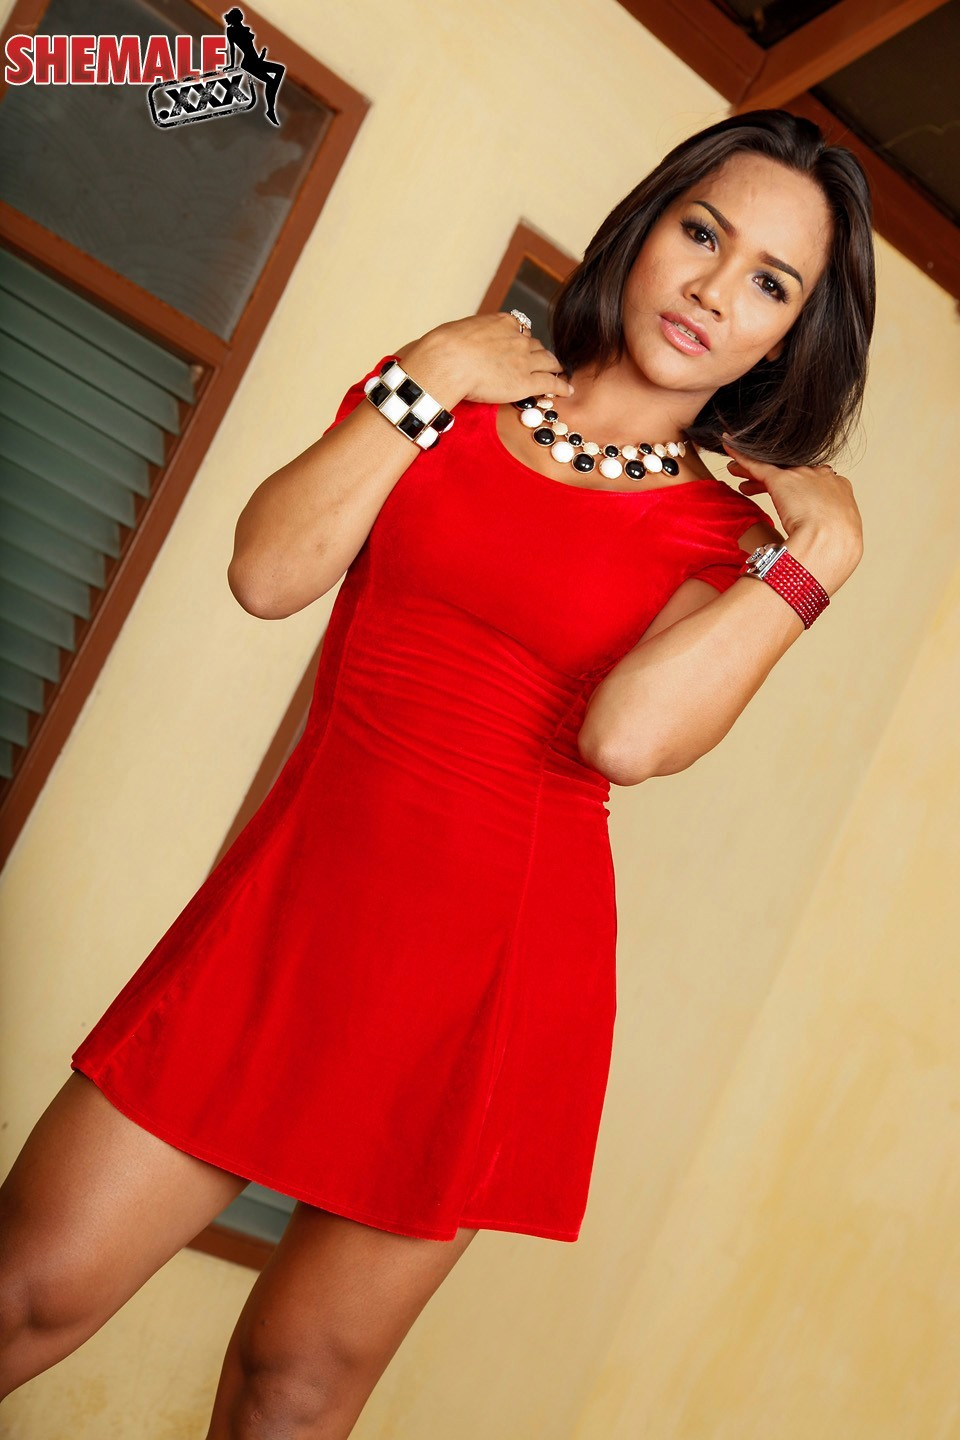 Ao Is A Voluptuous And Filthy Girl Whos Versatile And Desires Romanti